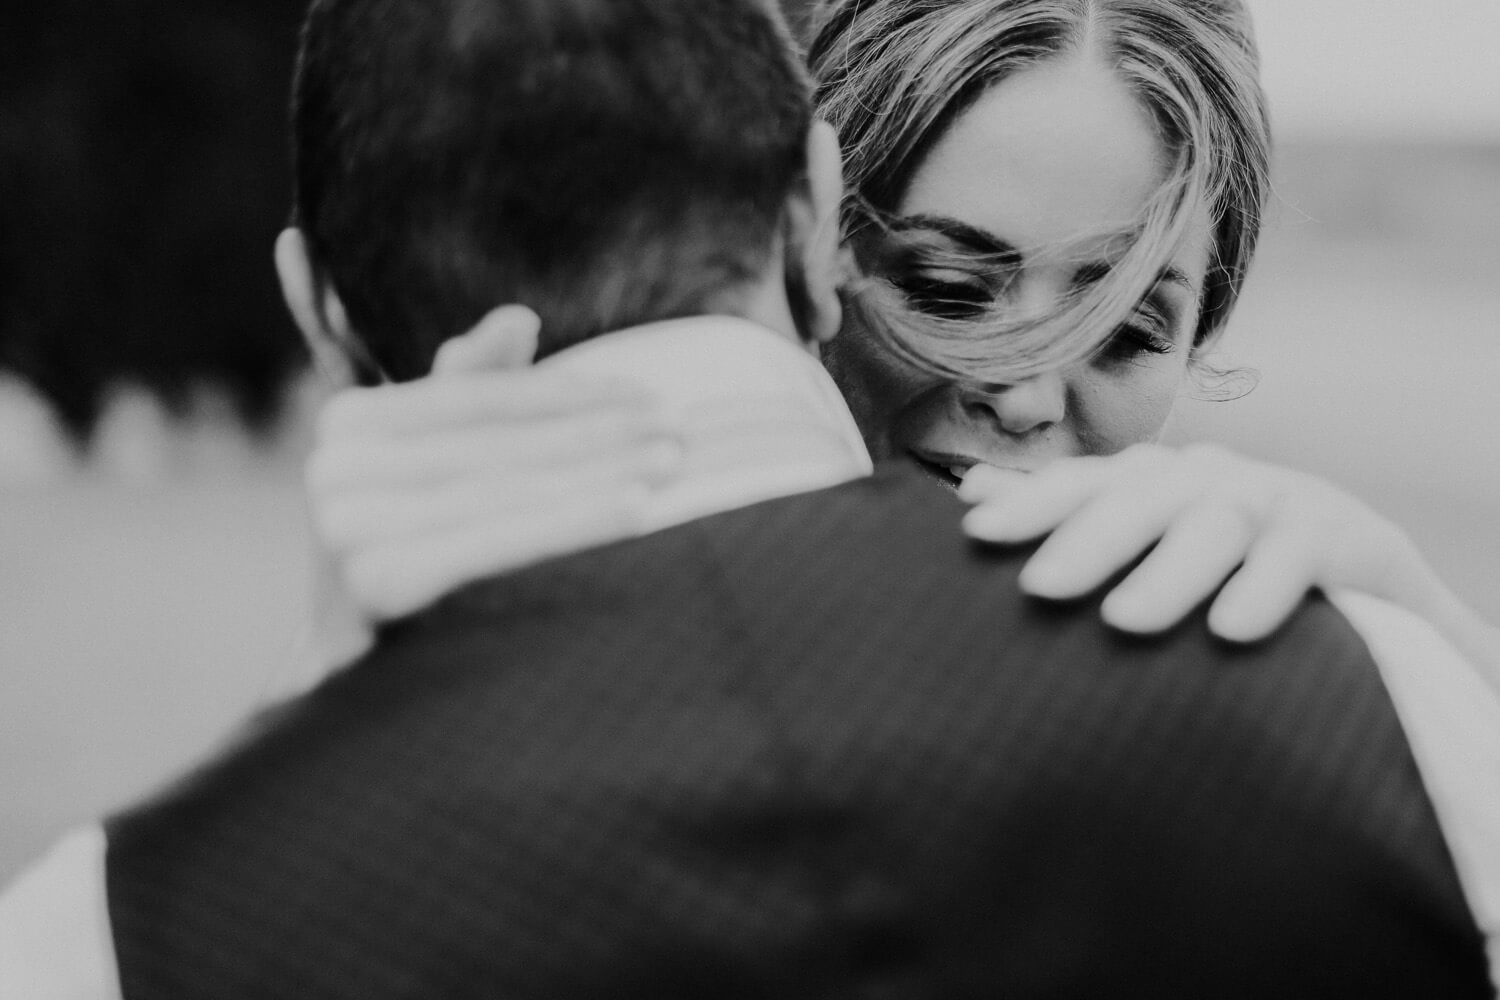 Black and white arty photo of bride hugging groom